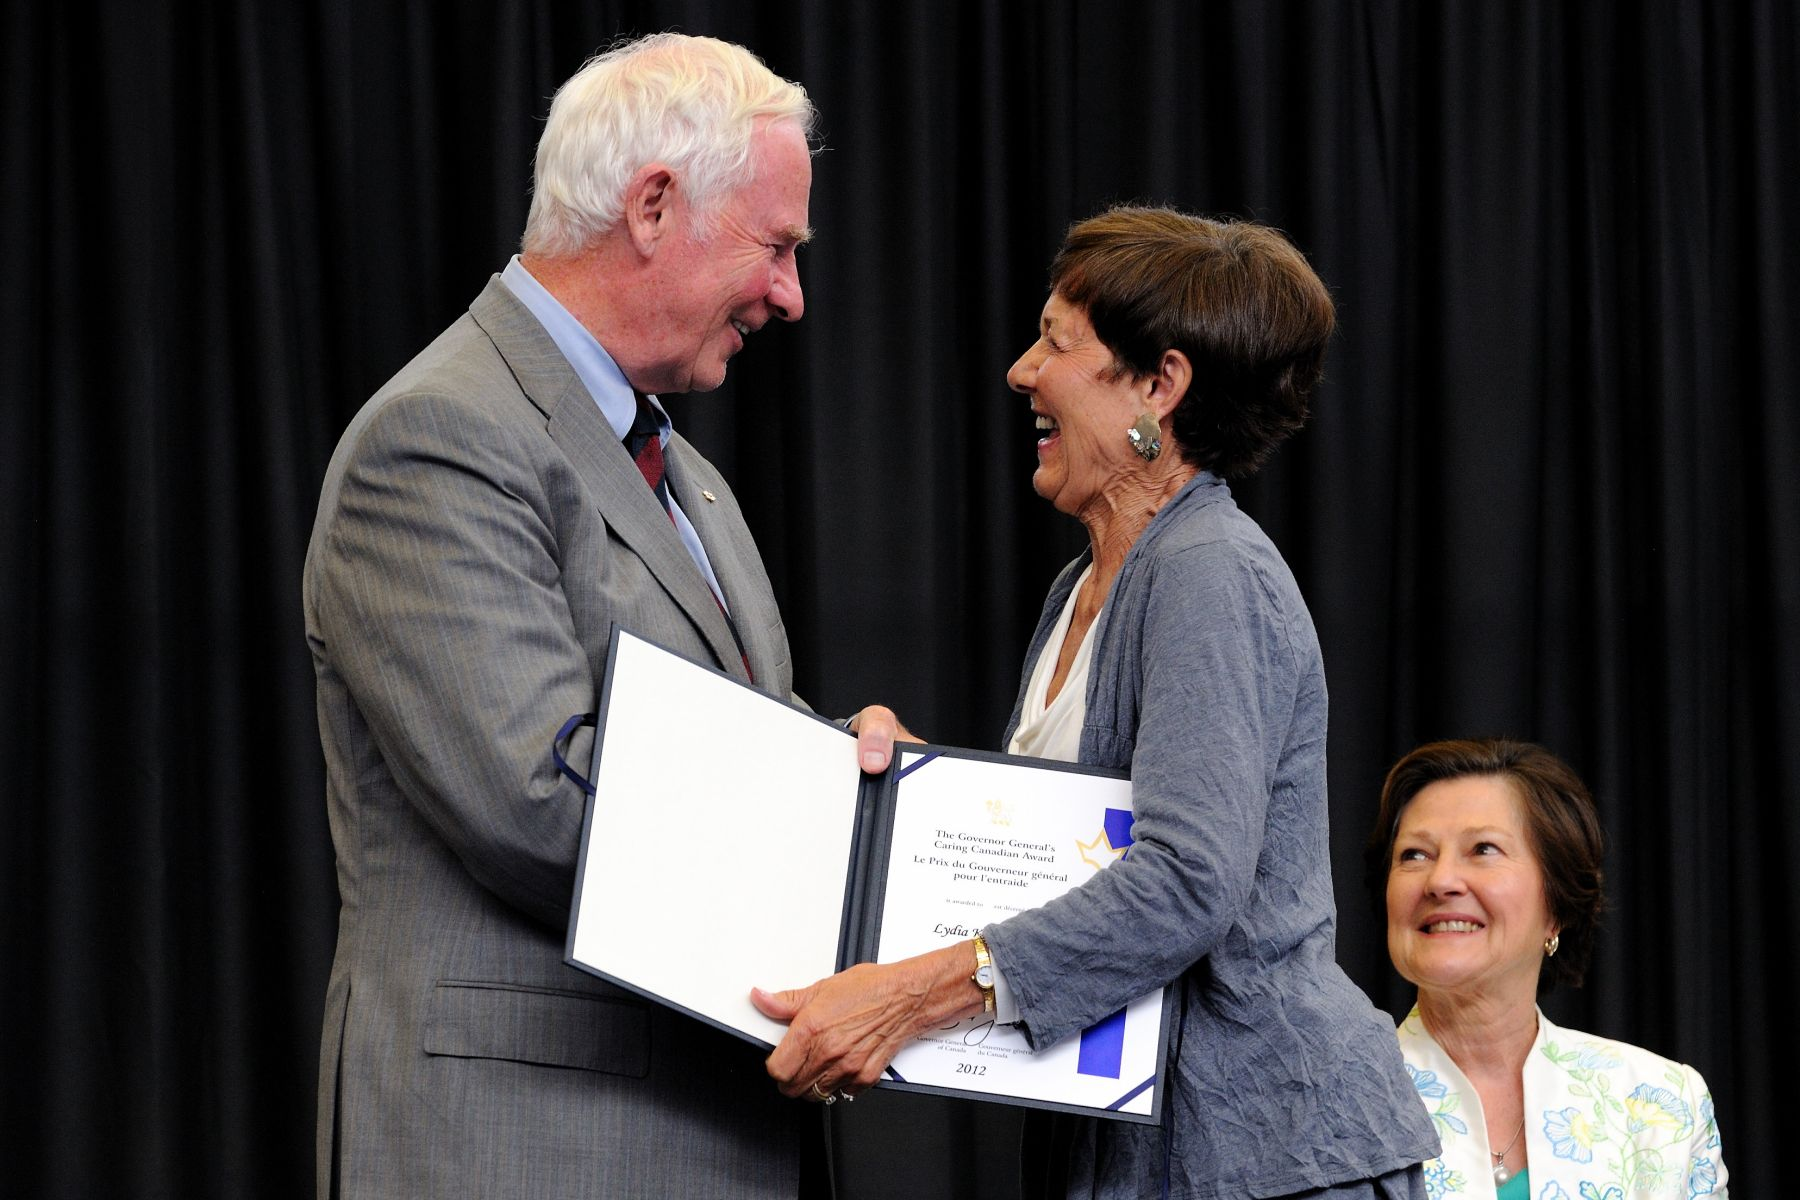 On this occasion, the Governor General also presented the Caring Canadian Award to 10 deserving volunteers from British Columbia. Ms. Lydia Kasianchuk, from Victoria, British Columbia, has contributed her time to a large number of organizations, including Arts Sustainability Victoria, Metchosin International Summer School for the Arts, and the West Coast Children's Choral Society, among others. In 1982, she was one of four founding members of the Victoria chapter of Mothers Against Drunk Driving (MADD). Currently, she provides comfort and support to terminally ill residents of the Victoria Hospice, and serves as a community advisor with the Victoria Foundation.